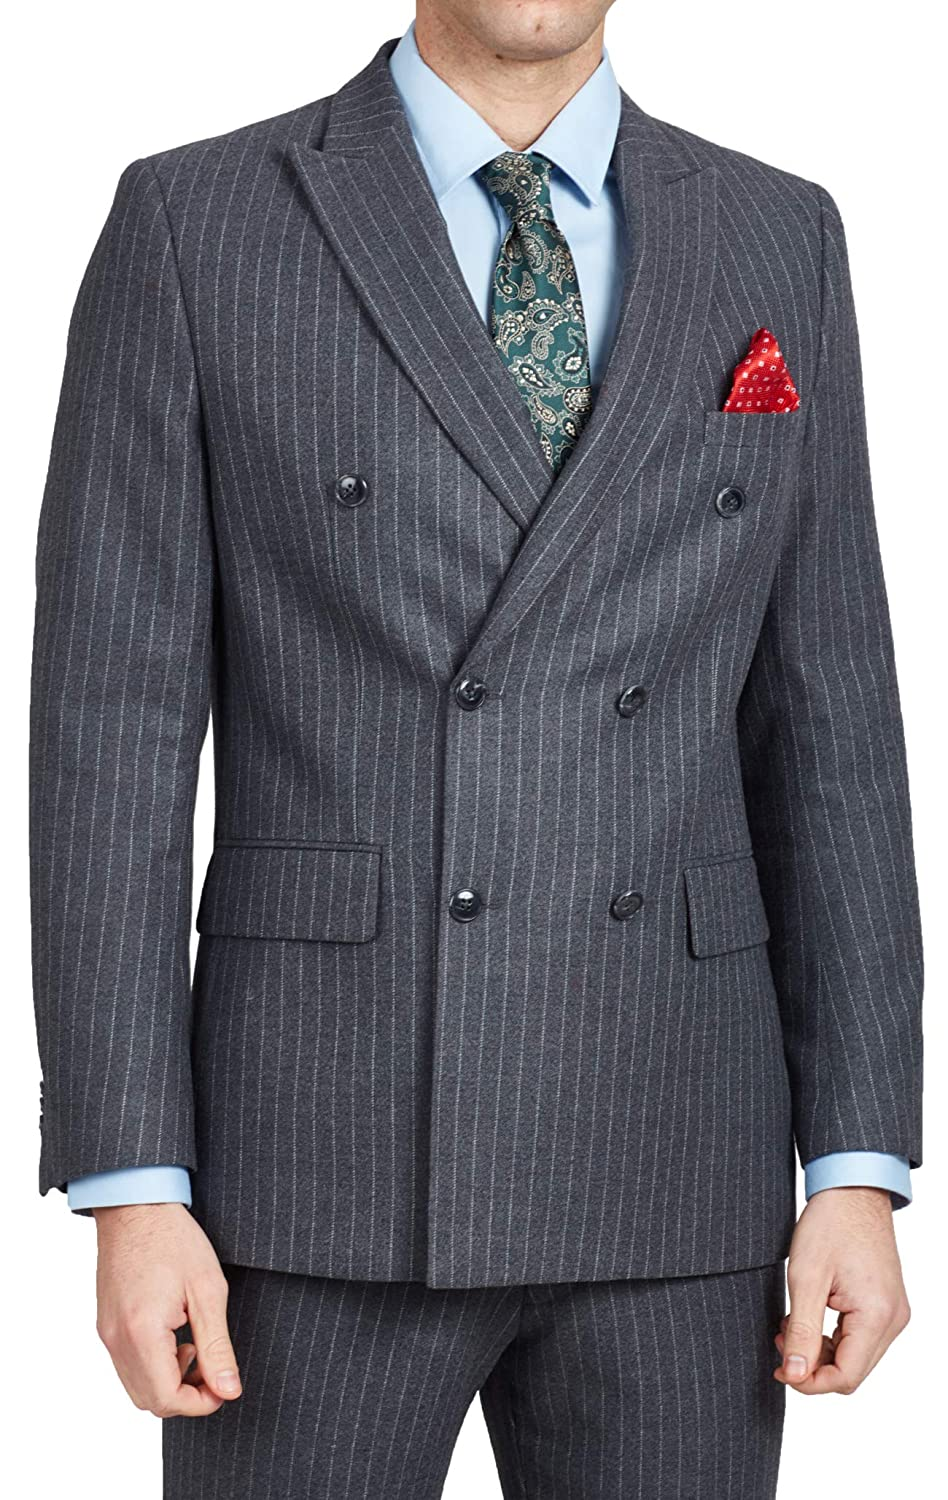 Retro Clothing for Men | Vintage Men's Fashion Dobell Mens Charcoal Suit Jacket Tailored Fit Notch Lapel Double Breasted Chalk Stripe £99.99 AT vintagedancer.com